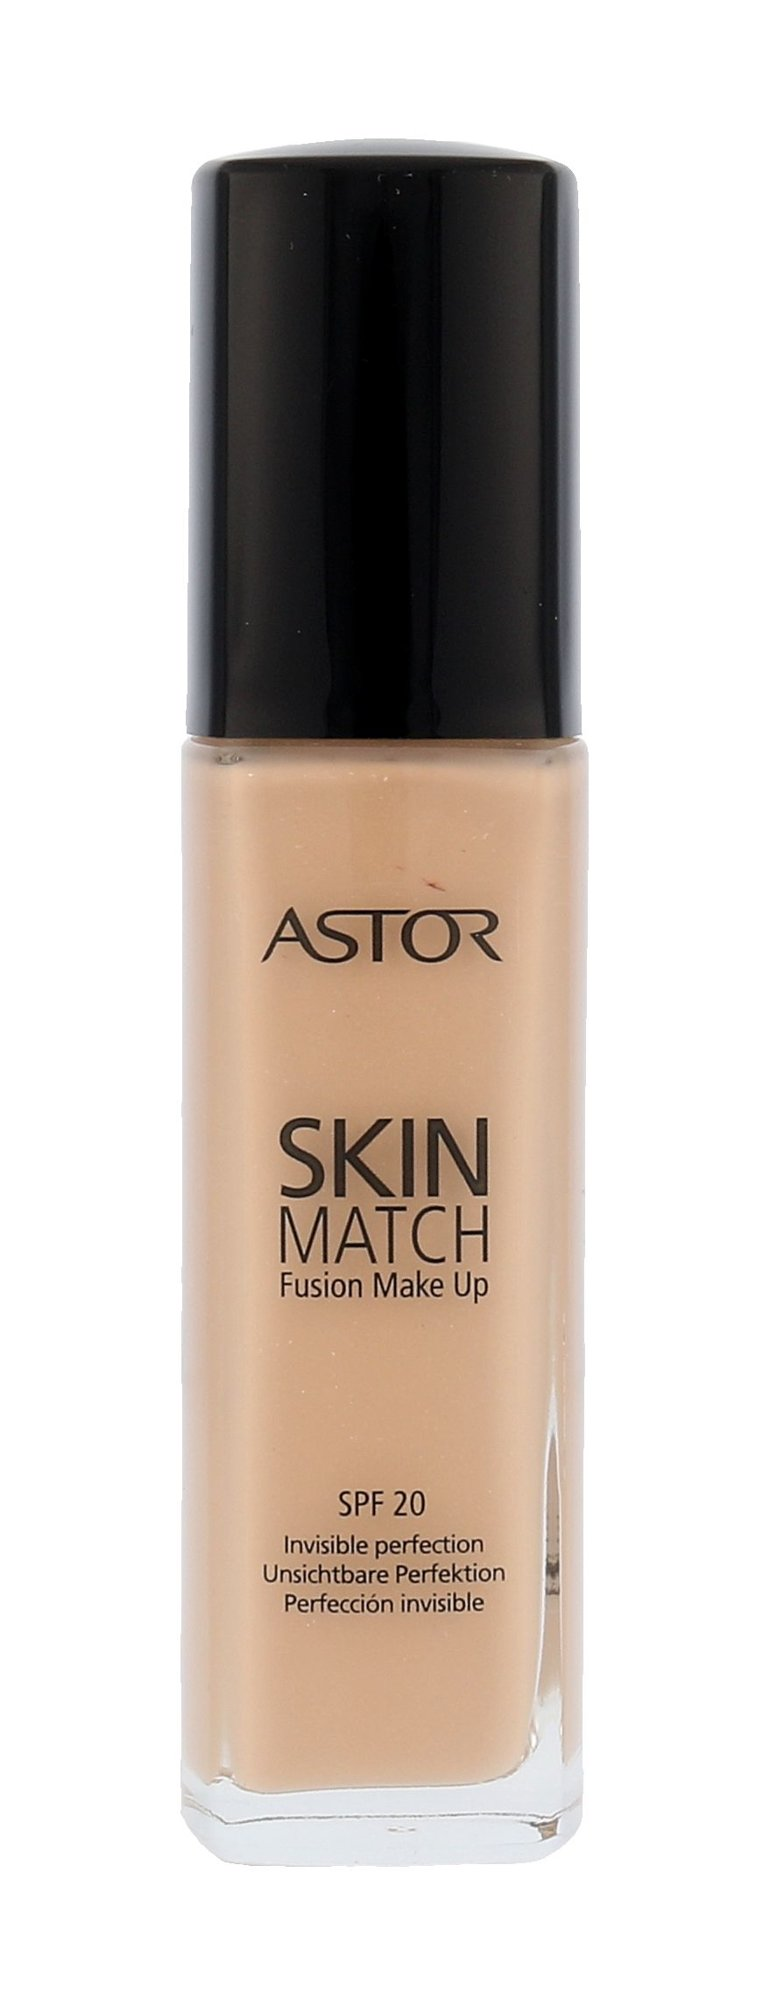 ASTOR Skin Match Cosmetic 30ml 100 Ivory